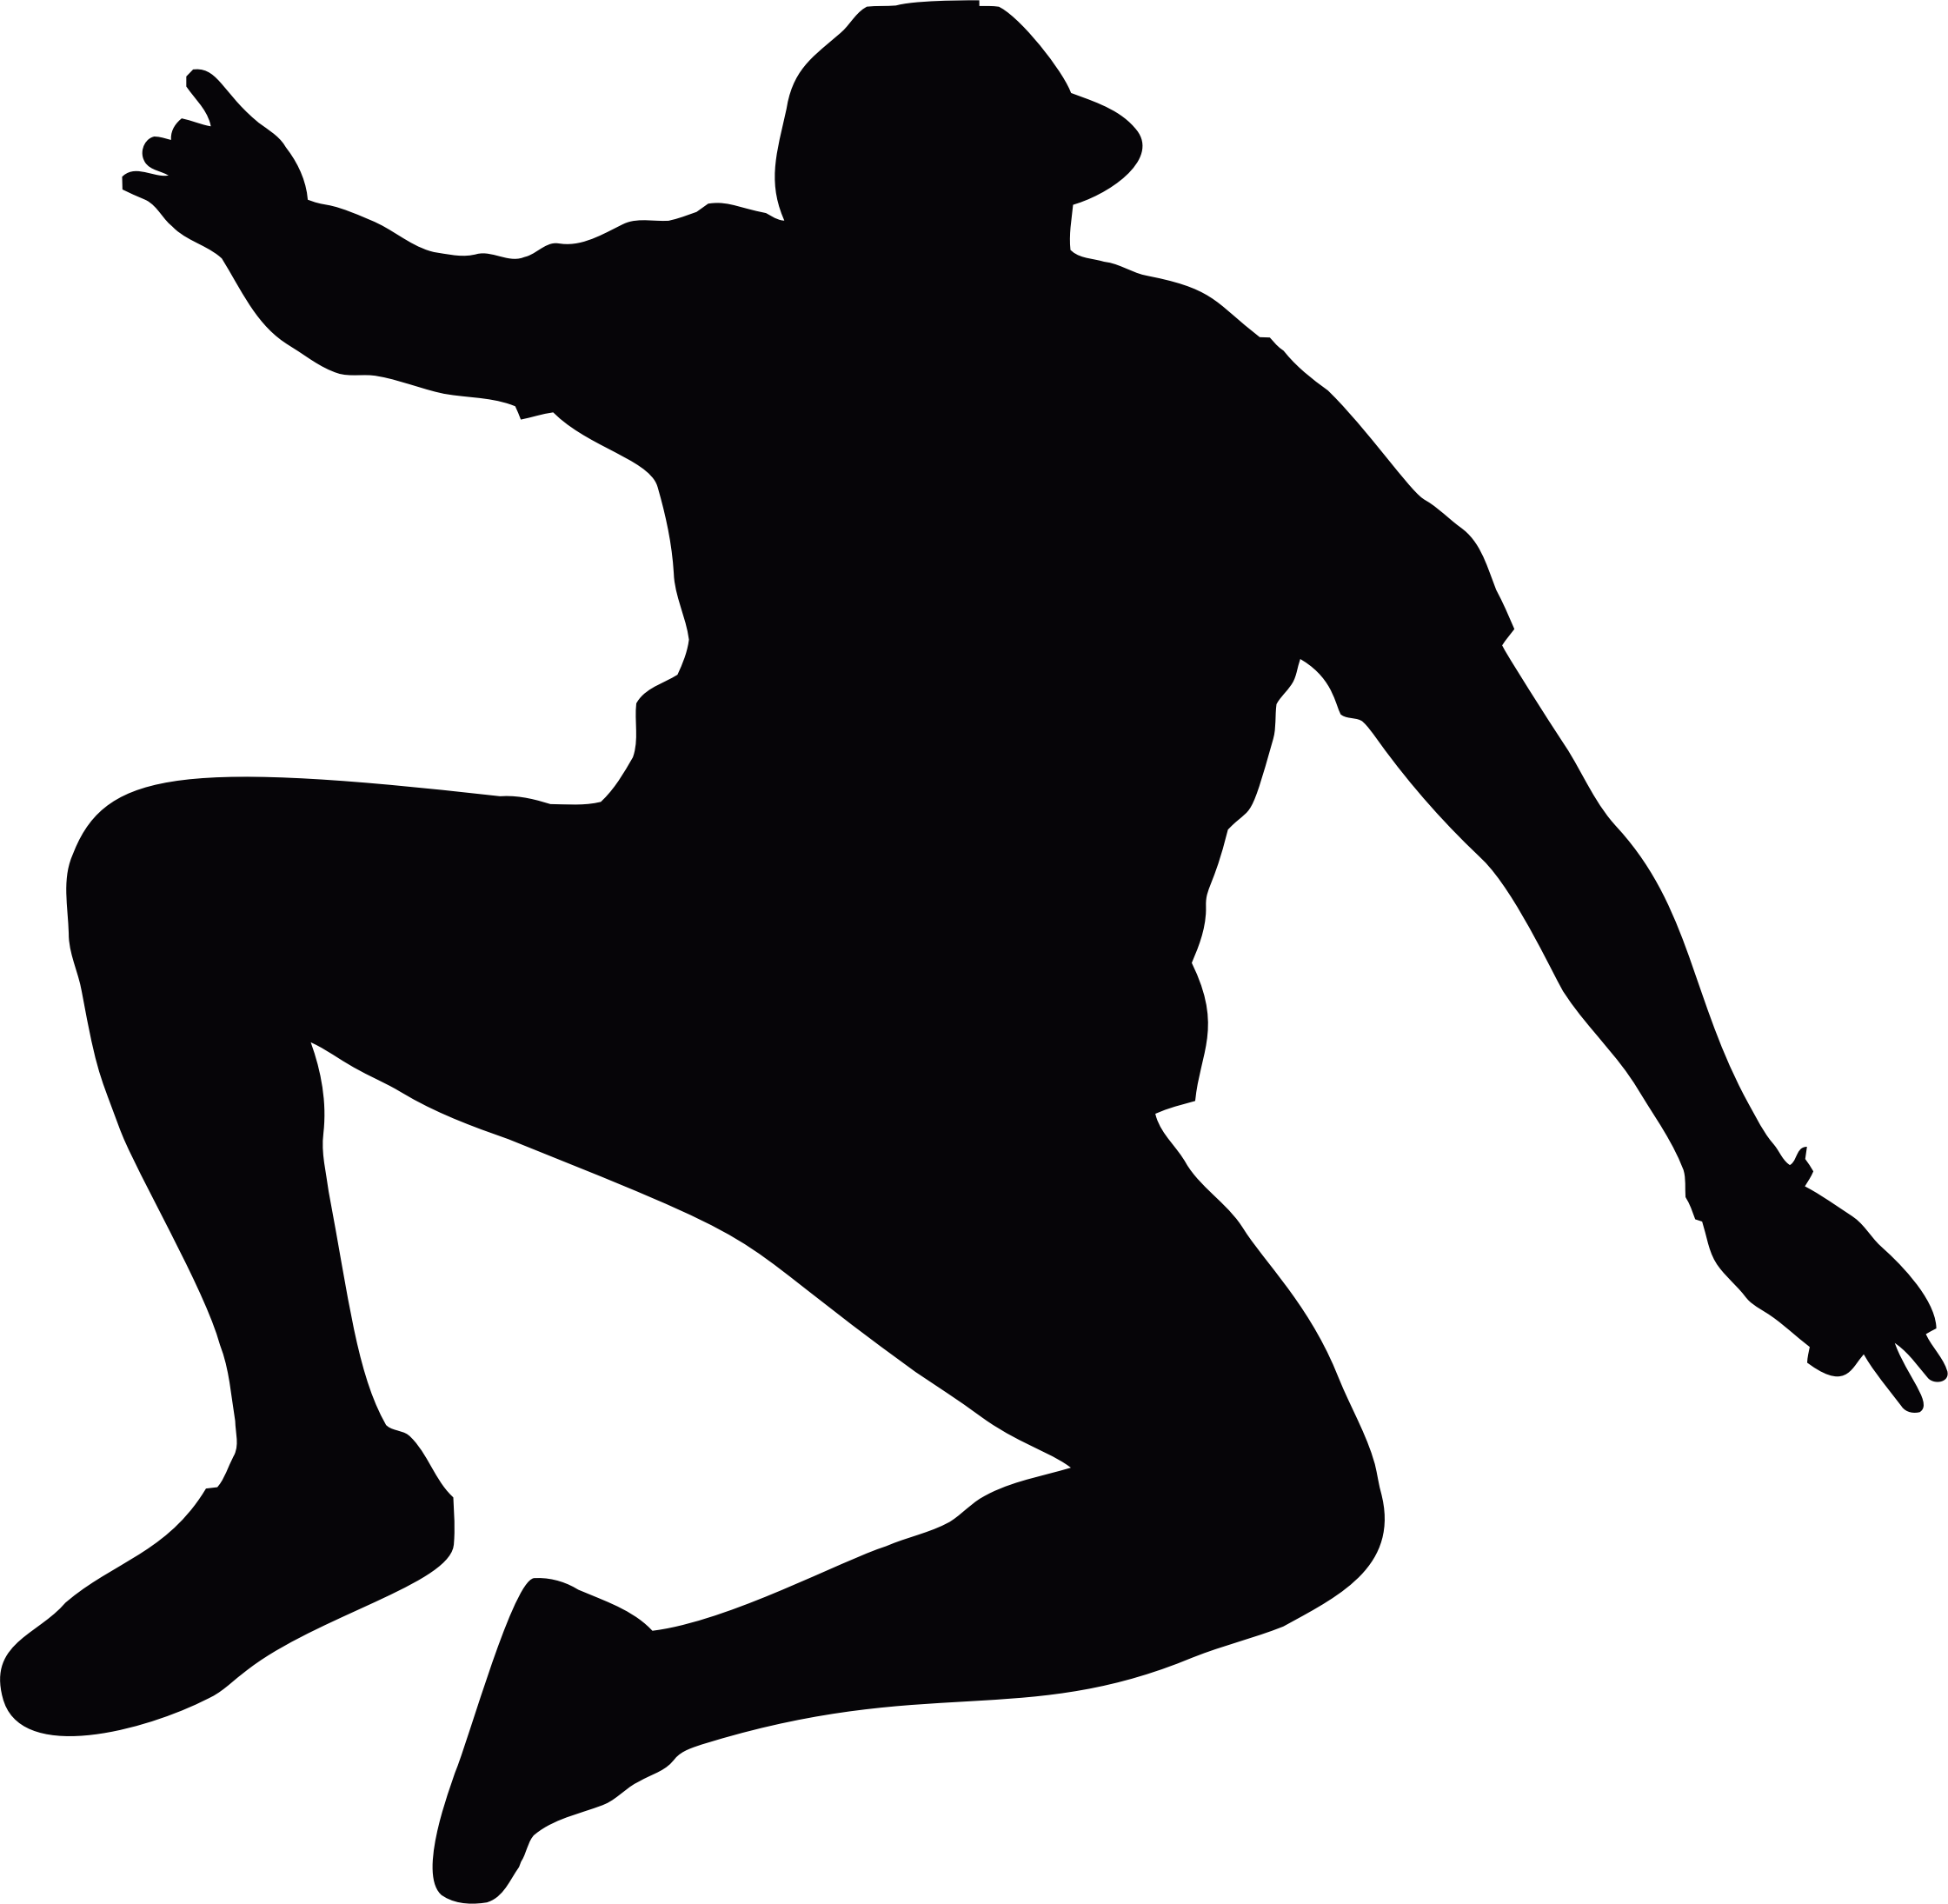 Silhouette Person Jumping.